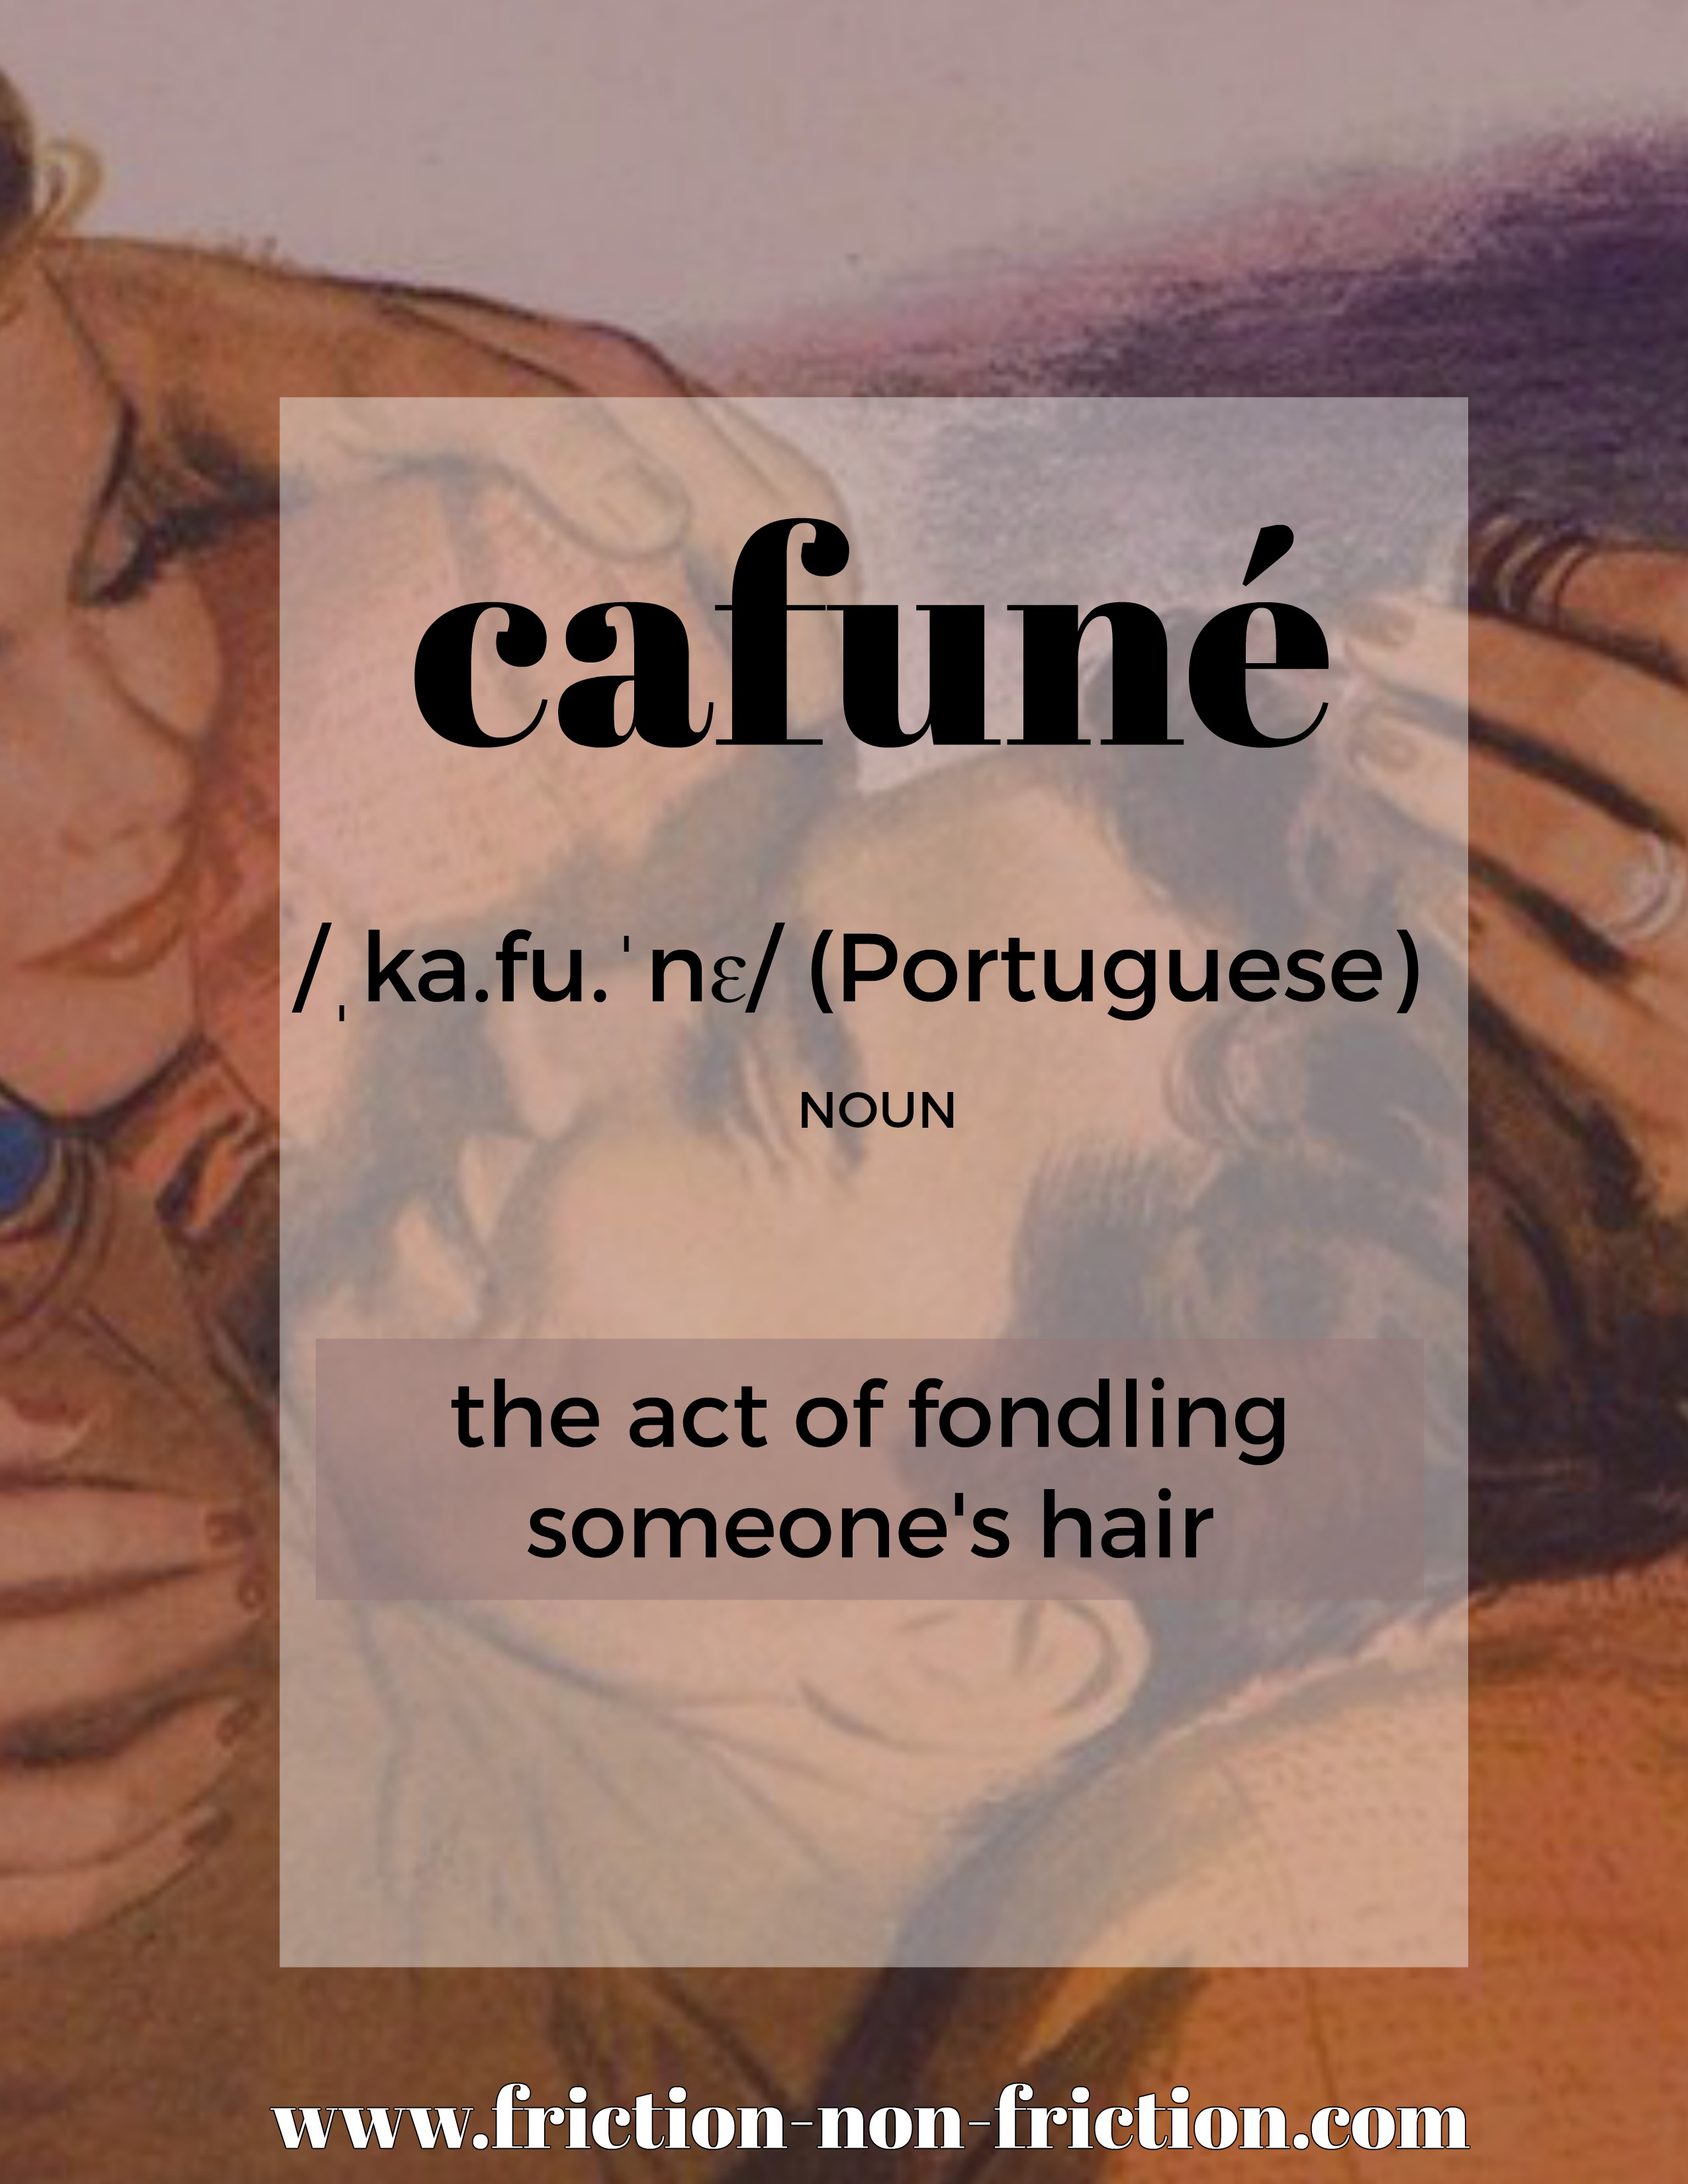 Cafune -- another great FRICTIONARY definition from Friction non Friction